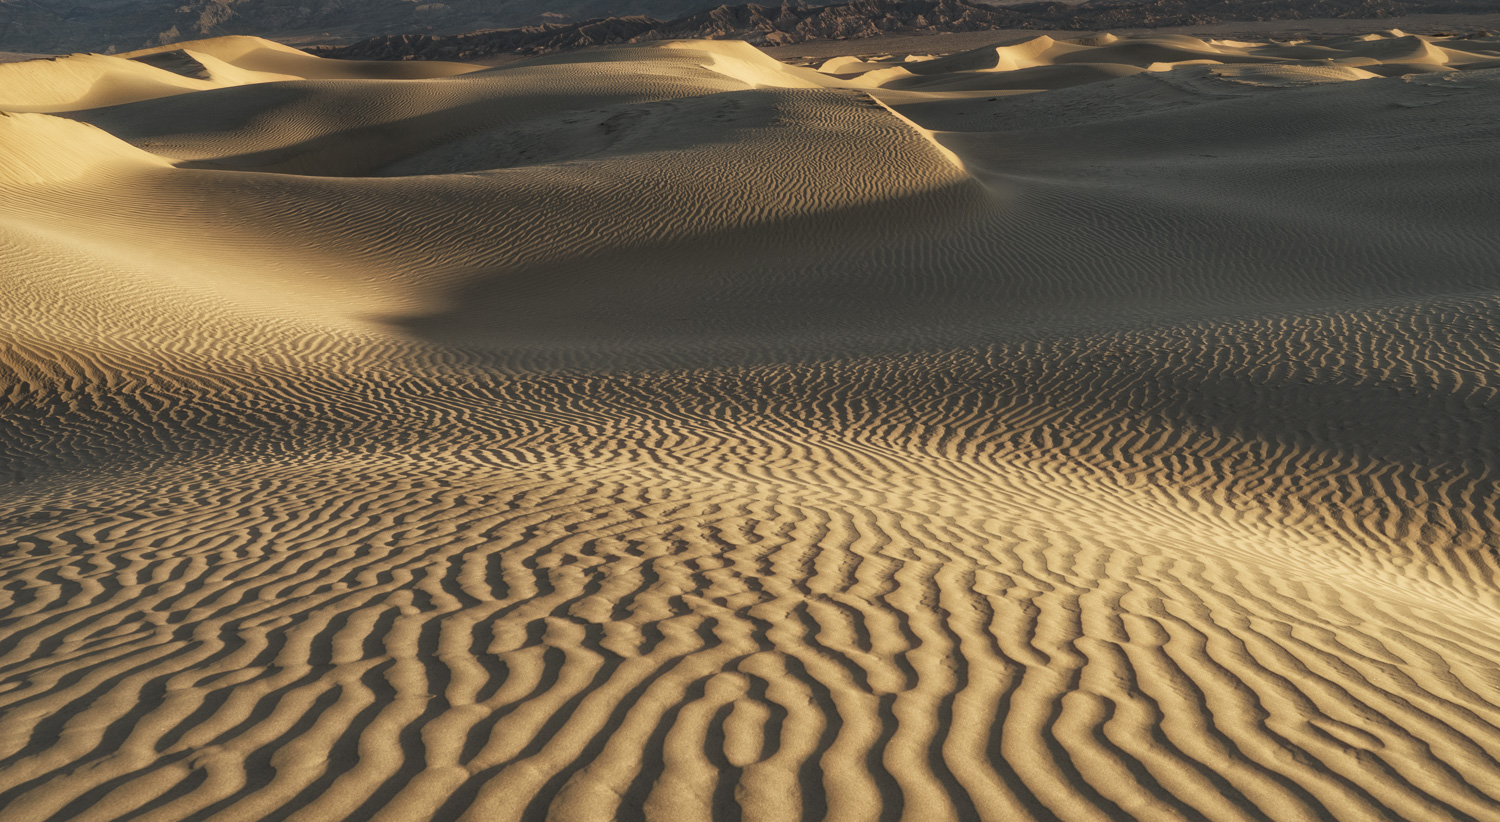 Mesquite Flat Sand Dunes, Death Valley NP, California